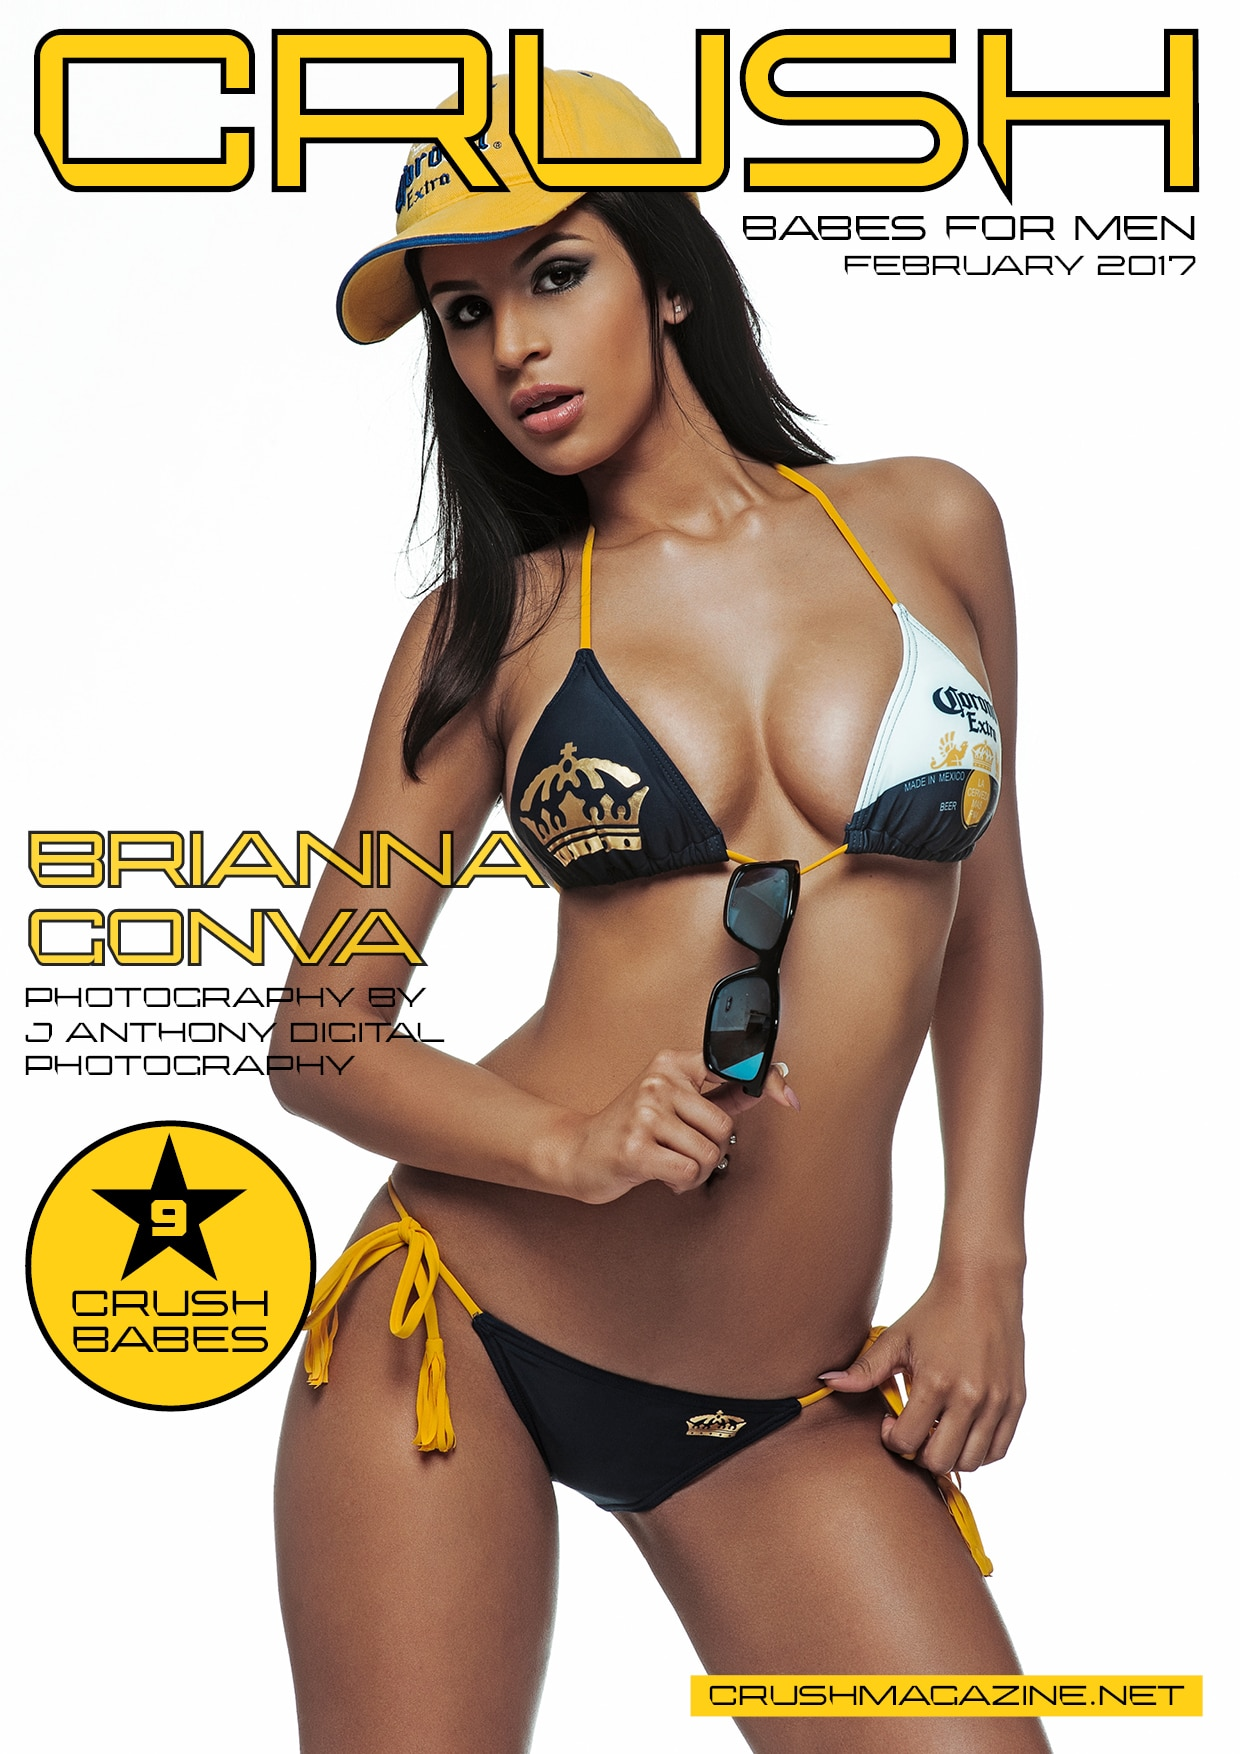 Crush Magazine - February 2017 - Brianna Gonva 1